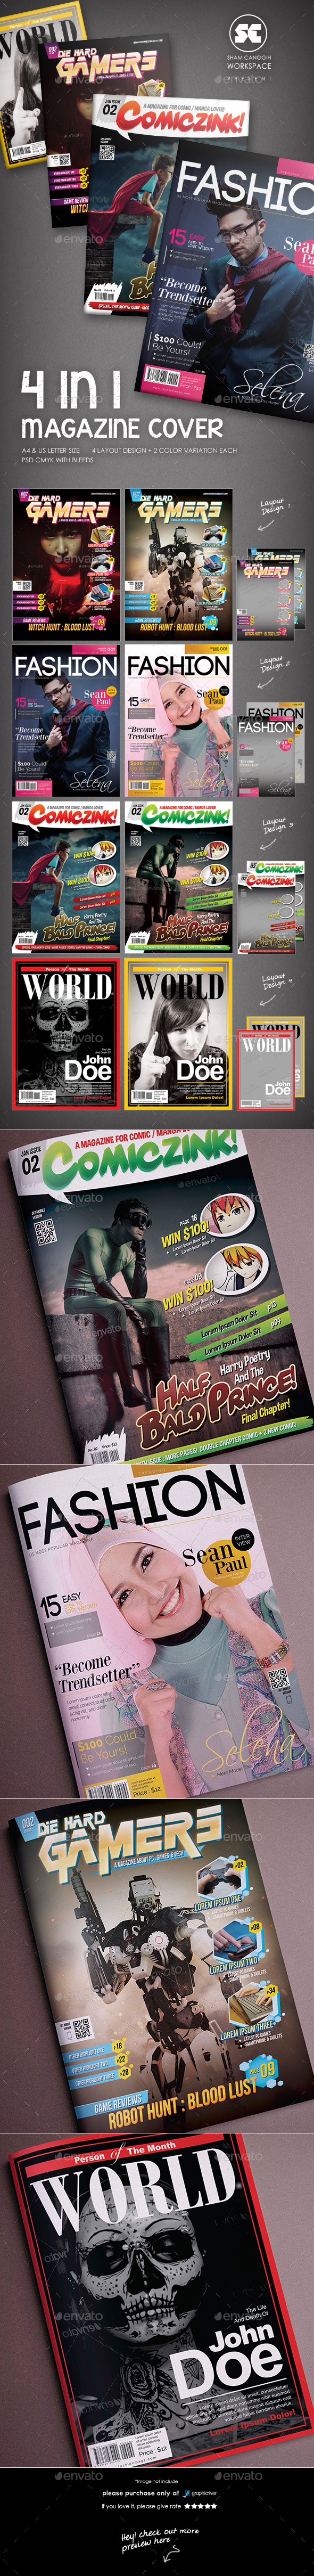 Magazine Cover Template 4 in 1 - Magazines Print Templates